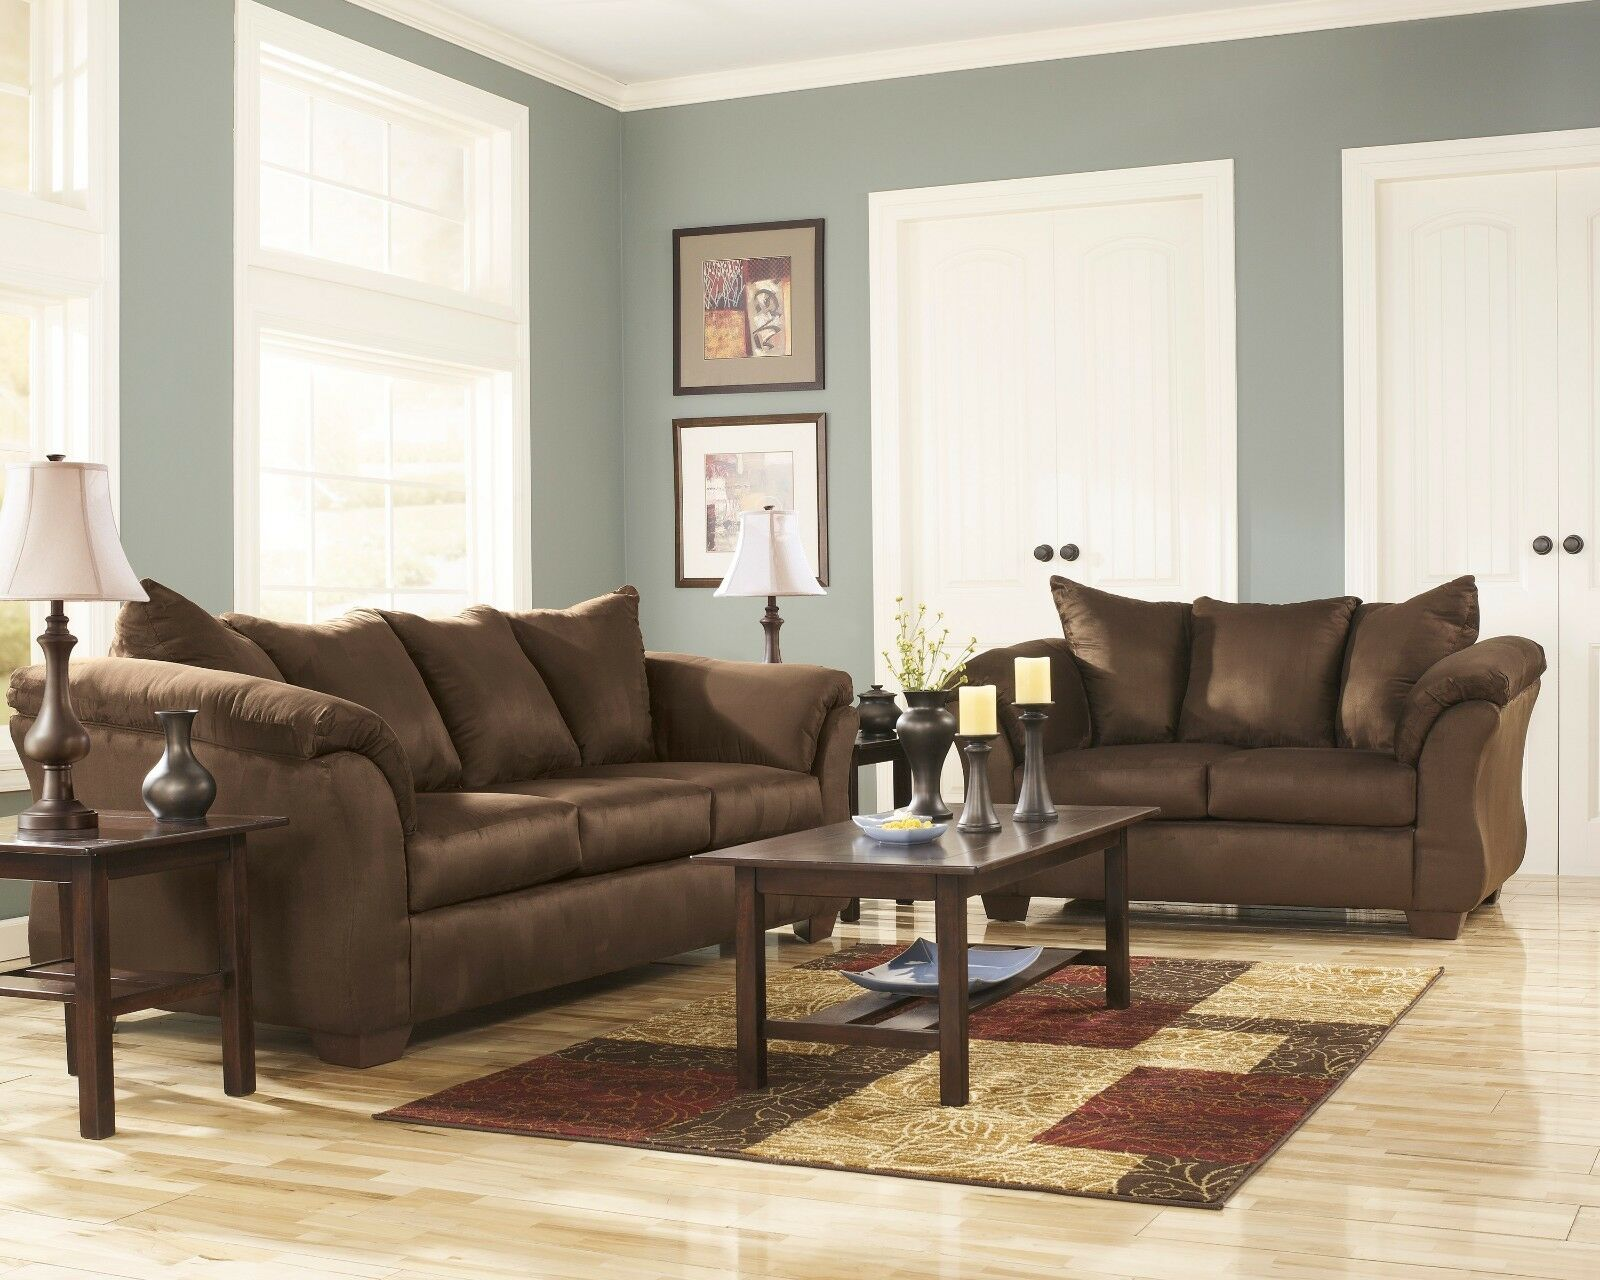 Ashley Furniture Darcy Cafe Sofa And Loveseat Living Room Set For Sale Online Ebay